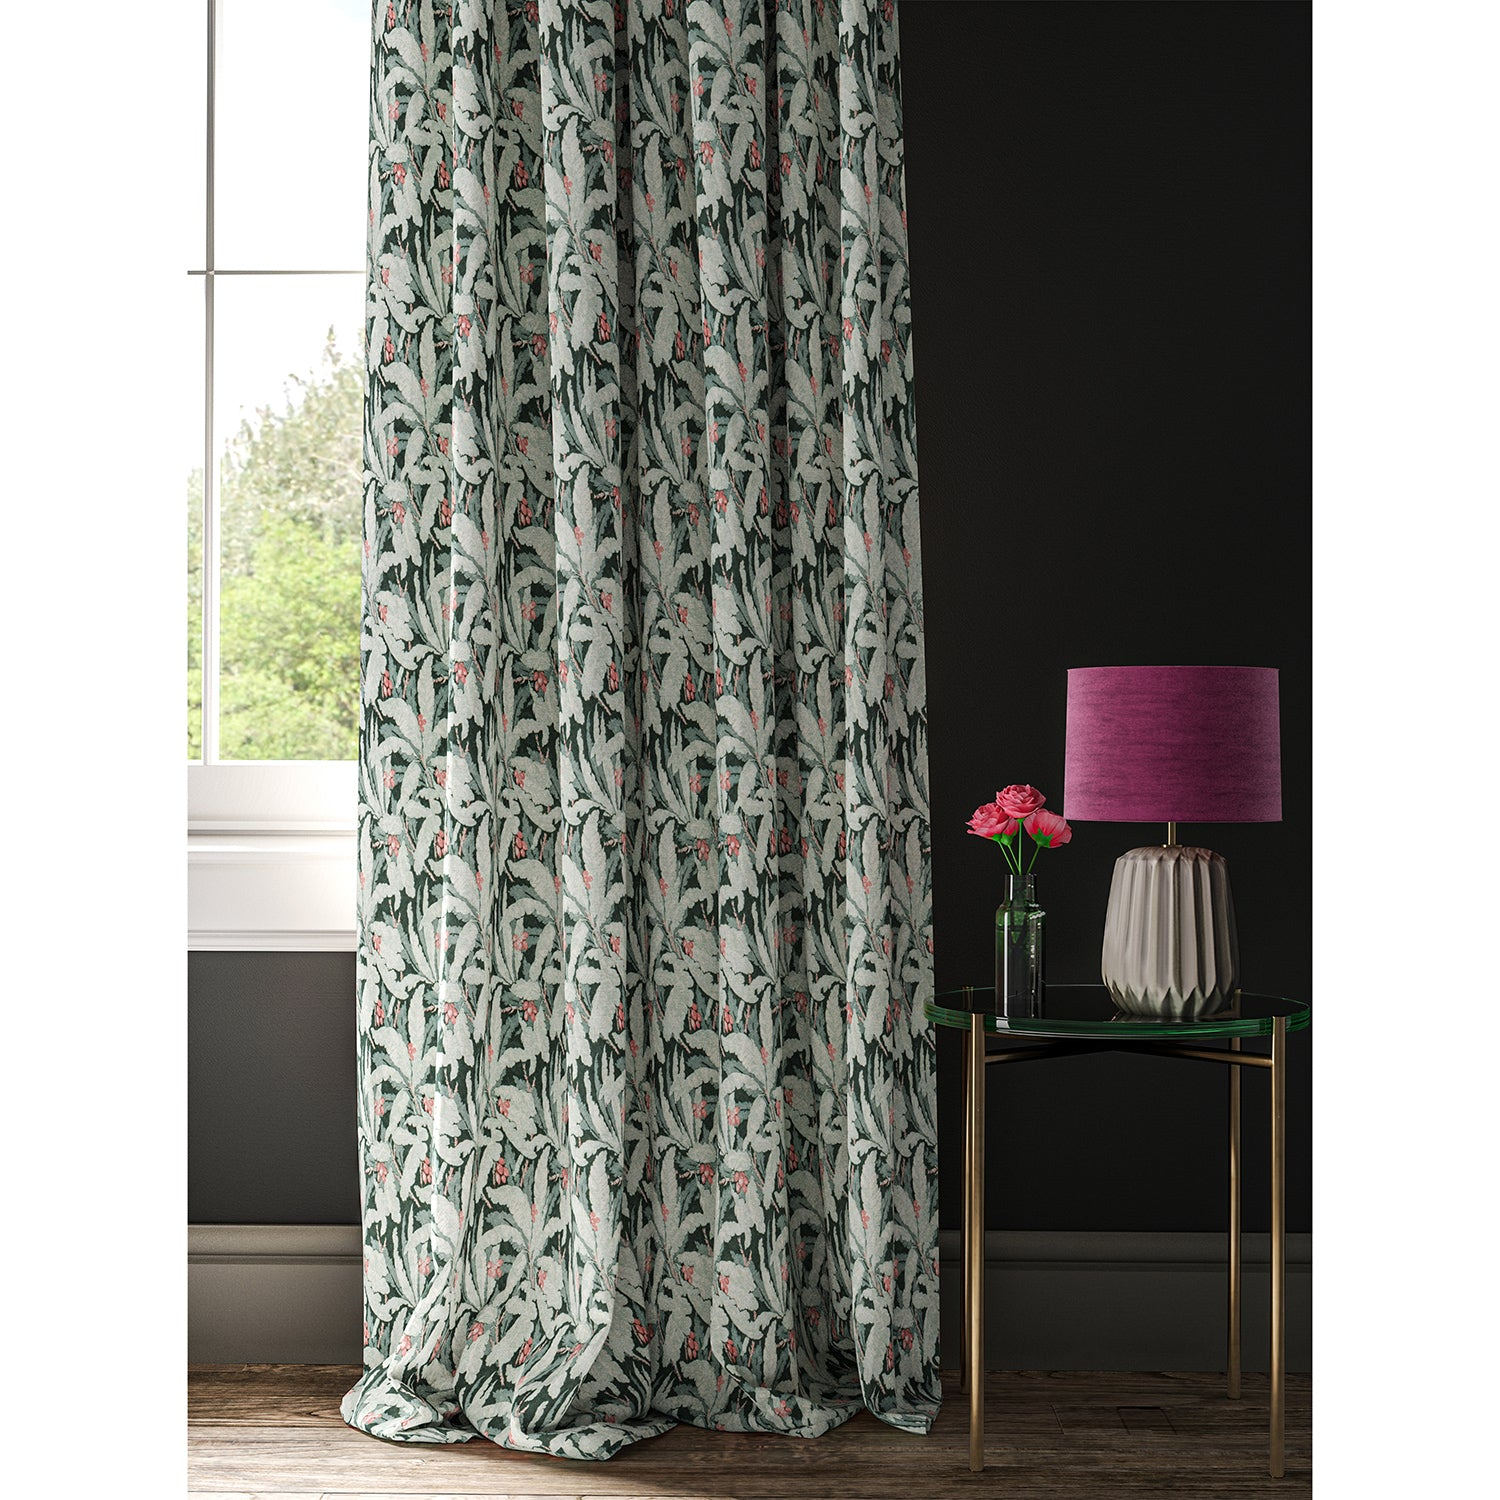 Curtain with a blue tropical leaf print fabric